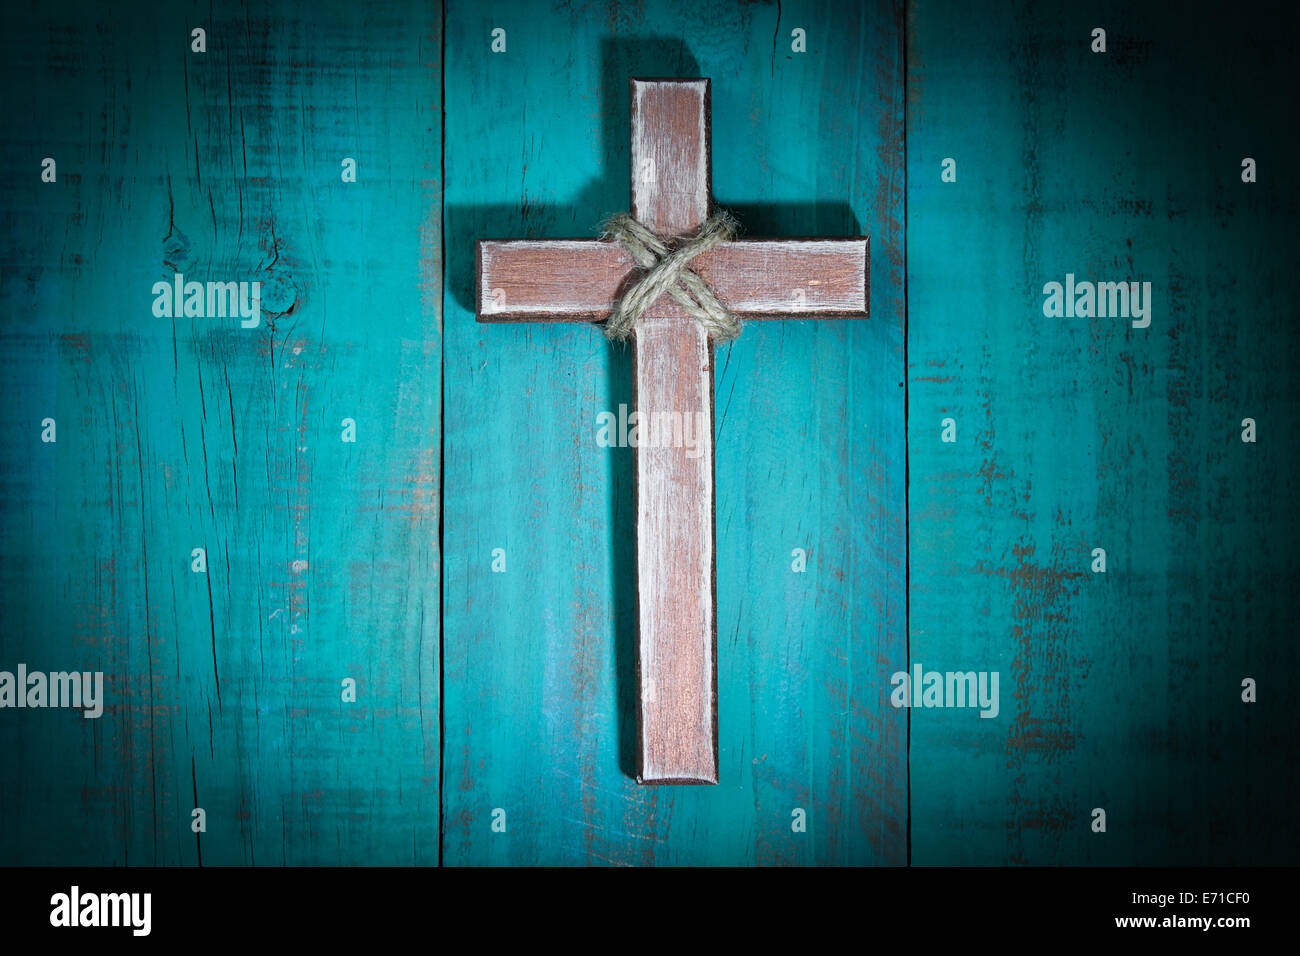 Spotlight On Rugged Wooden Cross Hanging On Antique Teal